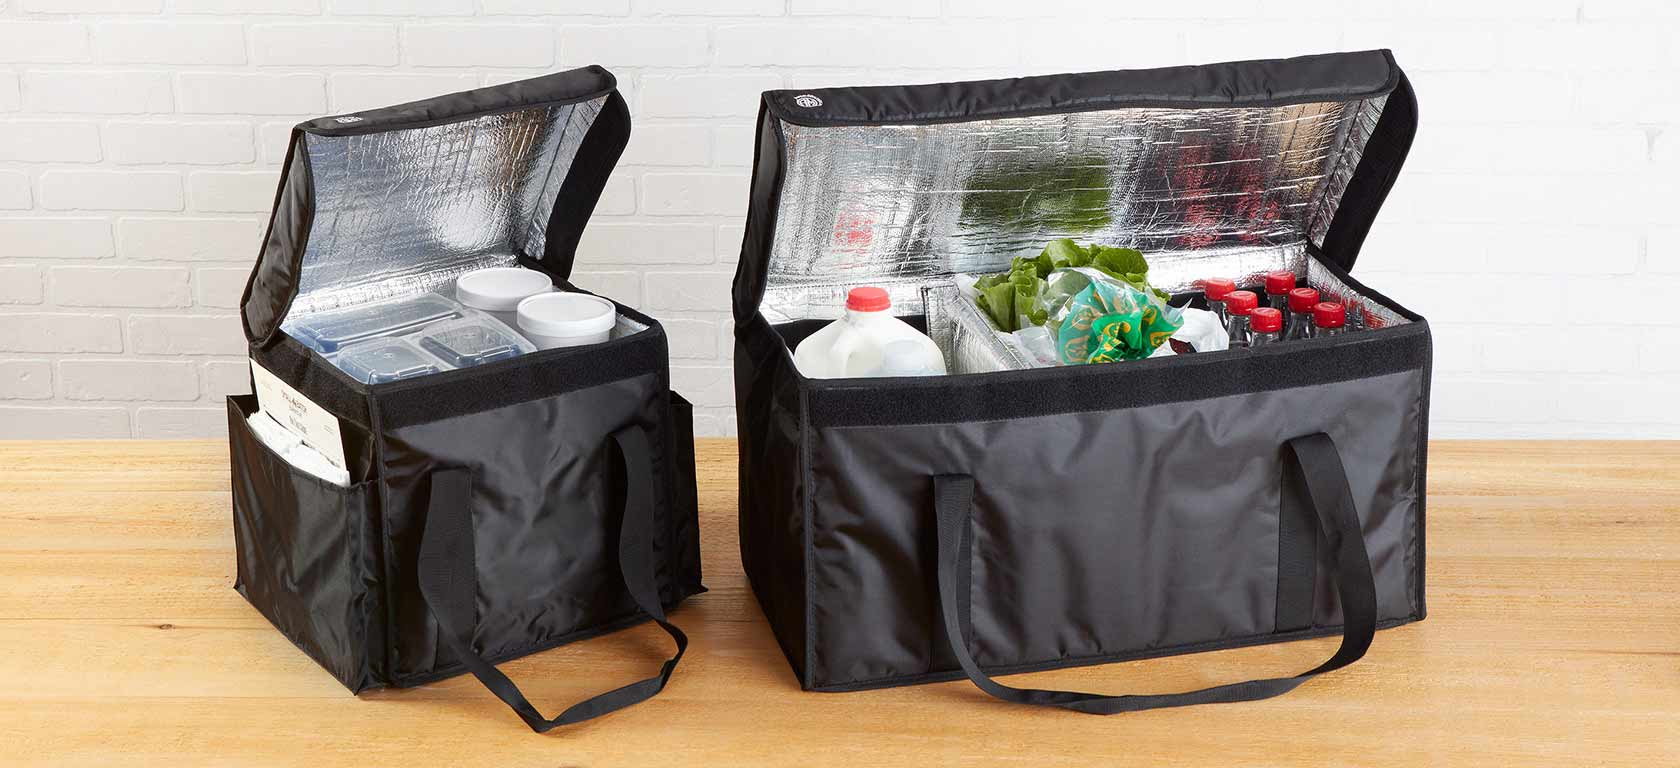 Black insulated carryout holders with shoulder straps.